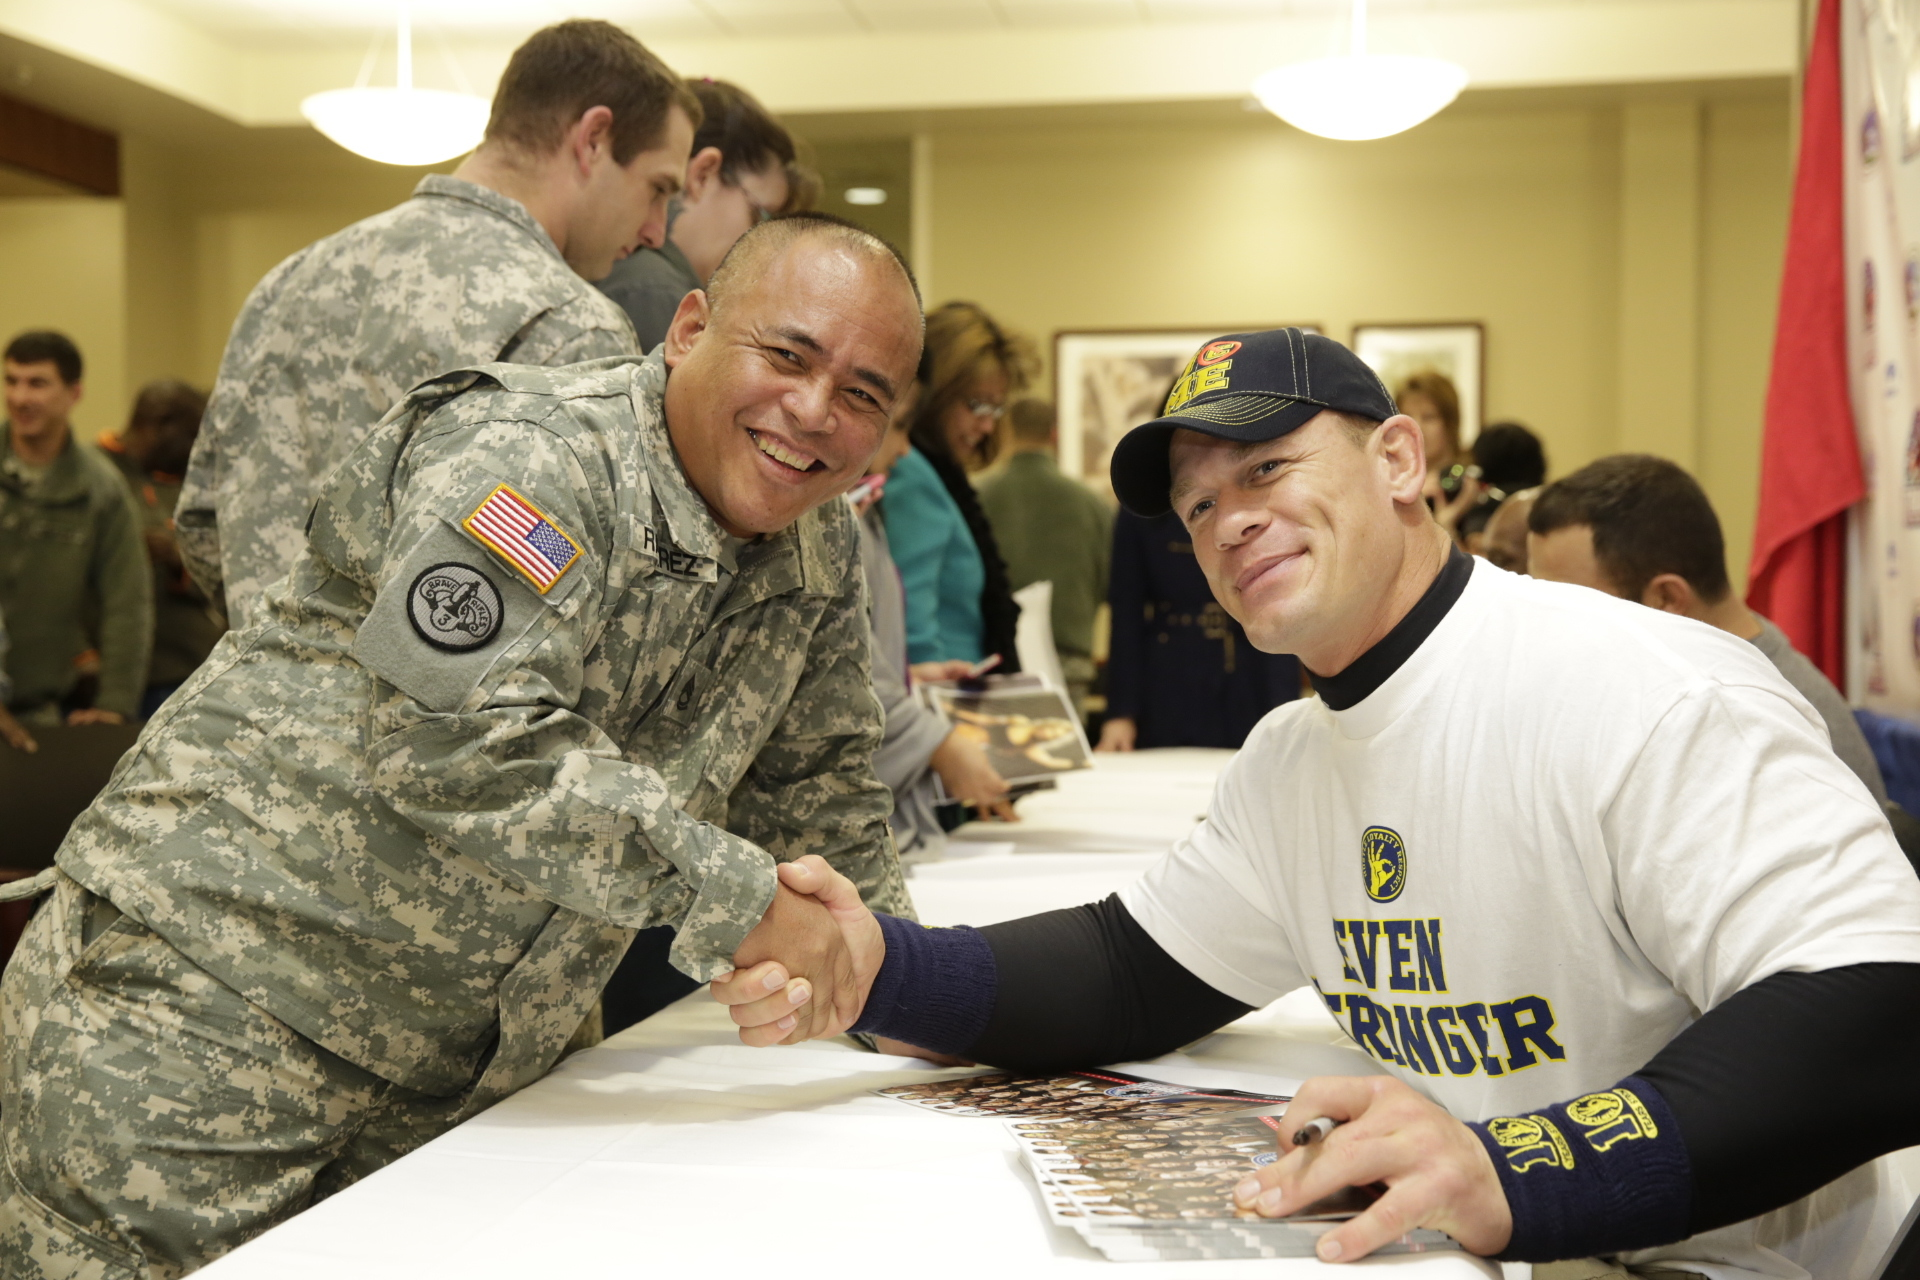 WWE Superstar John Cena greets our nation's troops. (Photo: Business Wire)